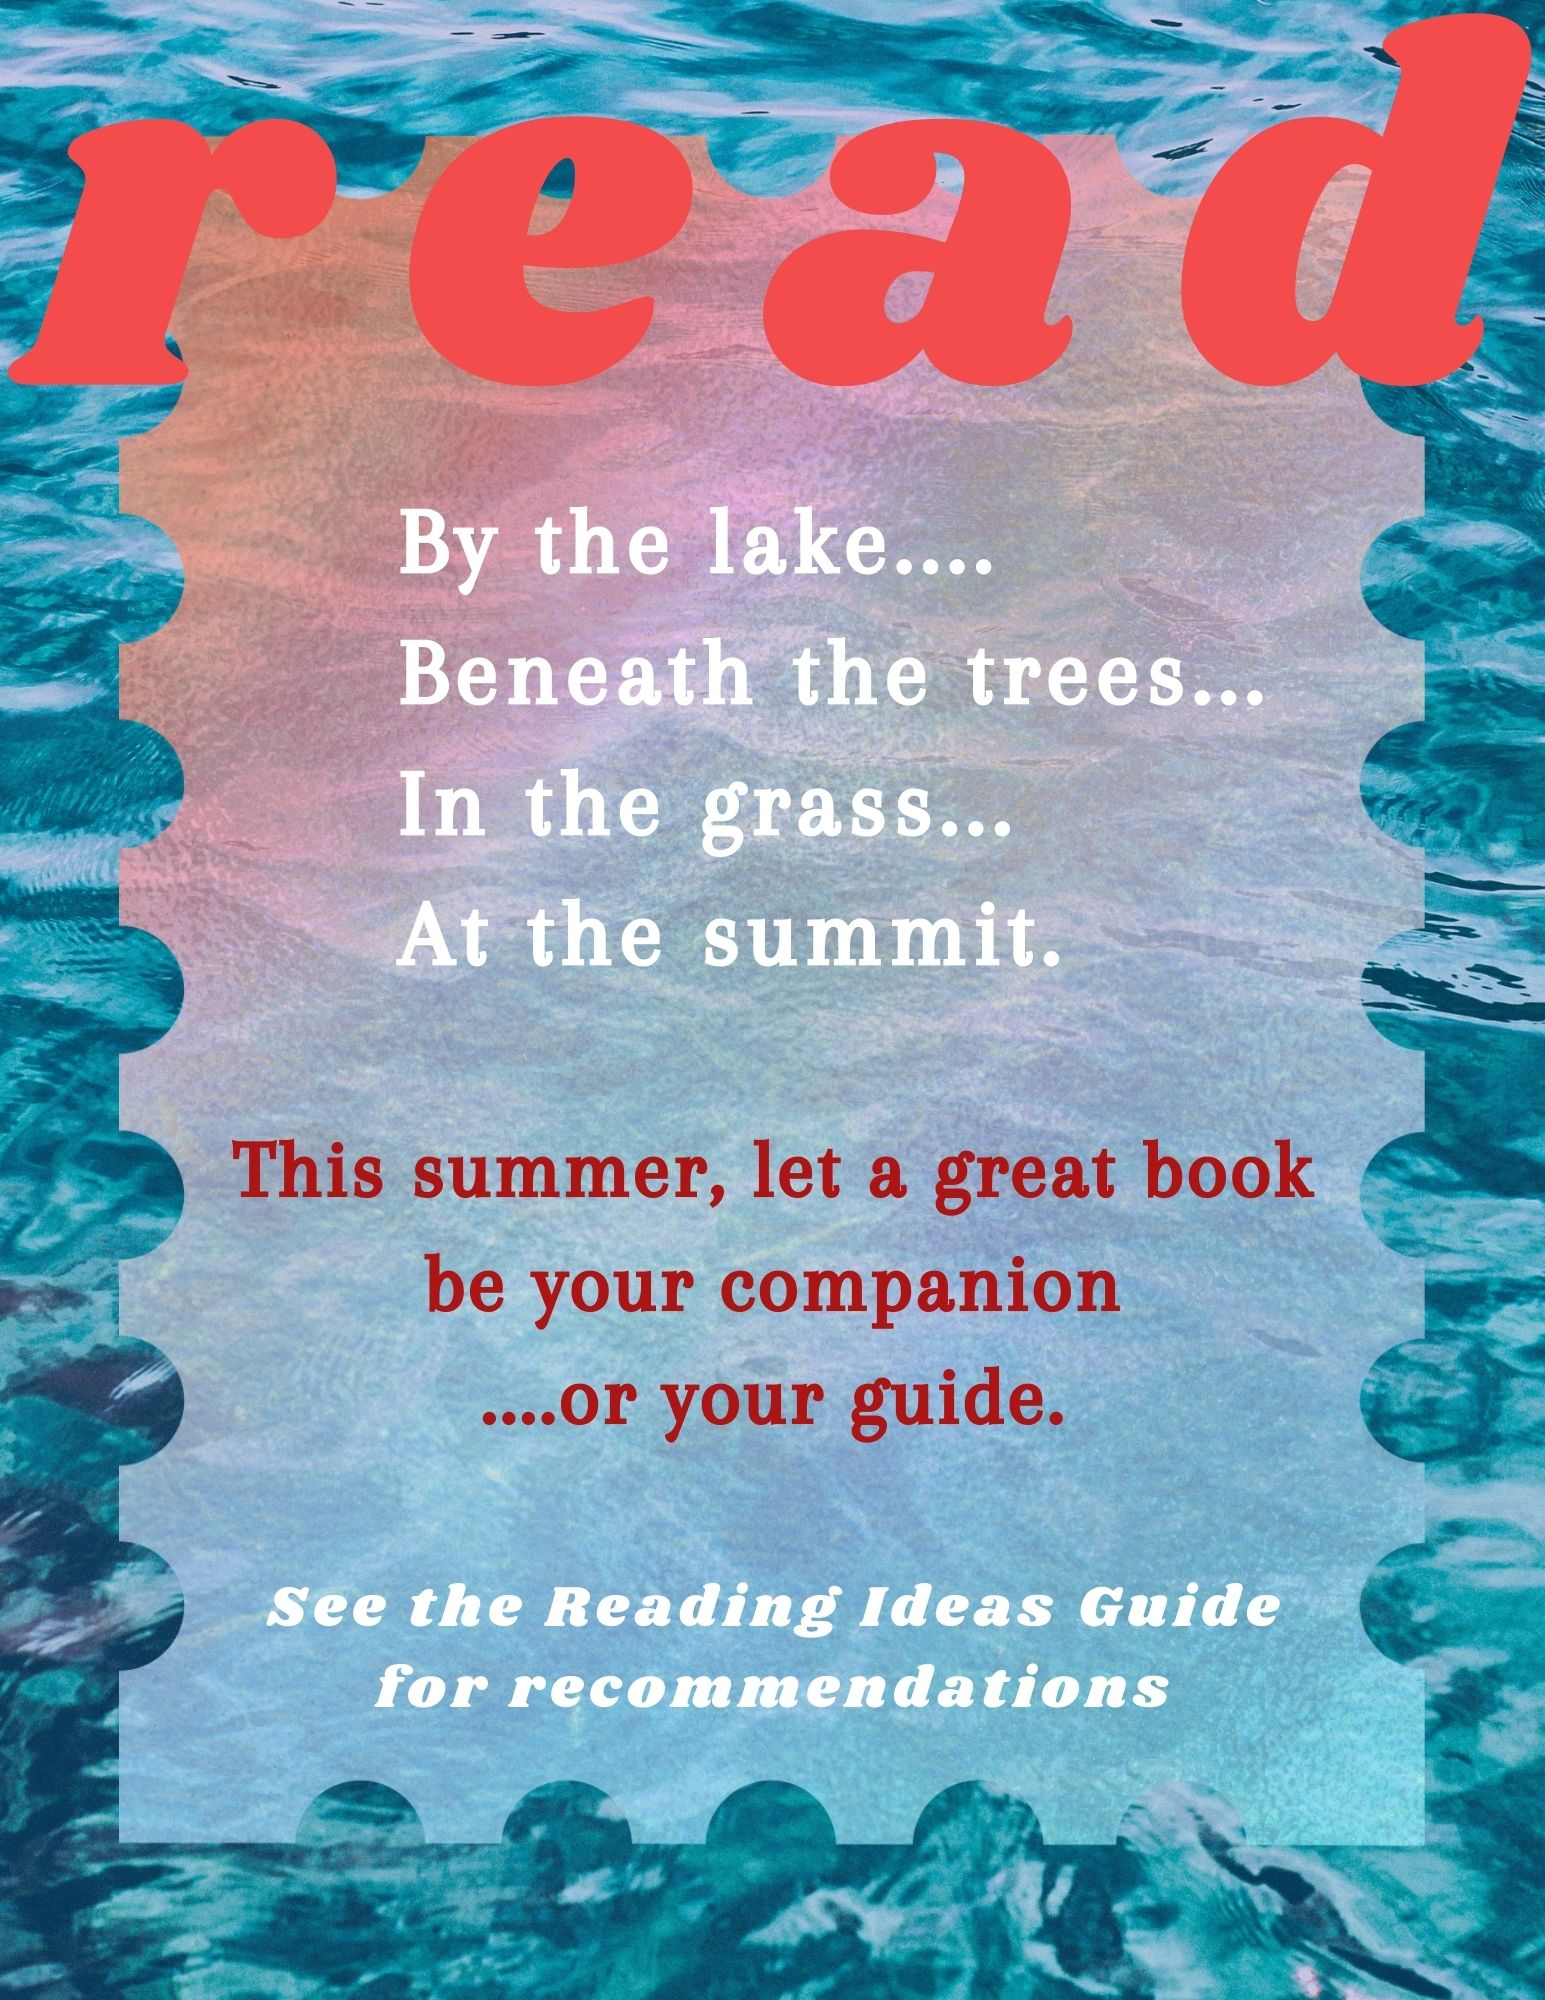 Read. By the lake...Beneath the trees...In the grass...At the summit. This summer, let a great book be your companion...or your guide. See the Reading Ideas Guide for recommendations.